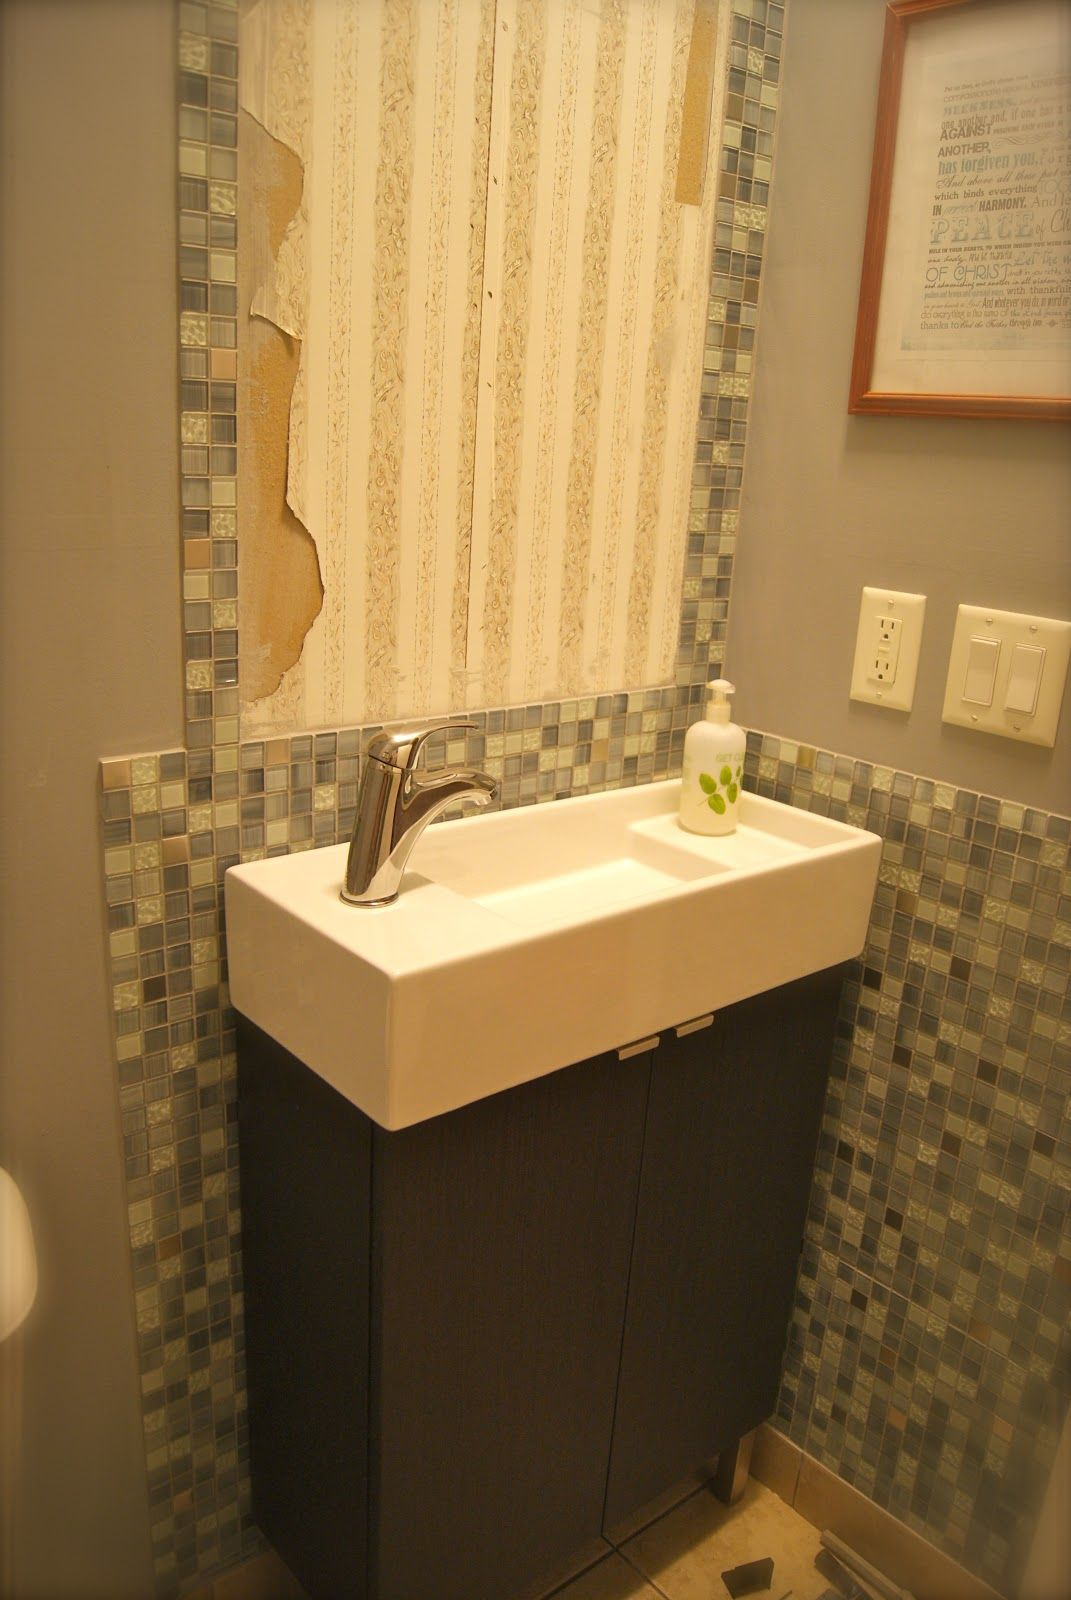 Cool Ikea Bathroom For Small Bathroom Remodel | For The Home | Pinterest throughout Review Small Sinks For Small Bathrooms